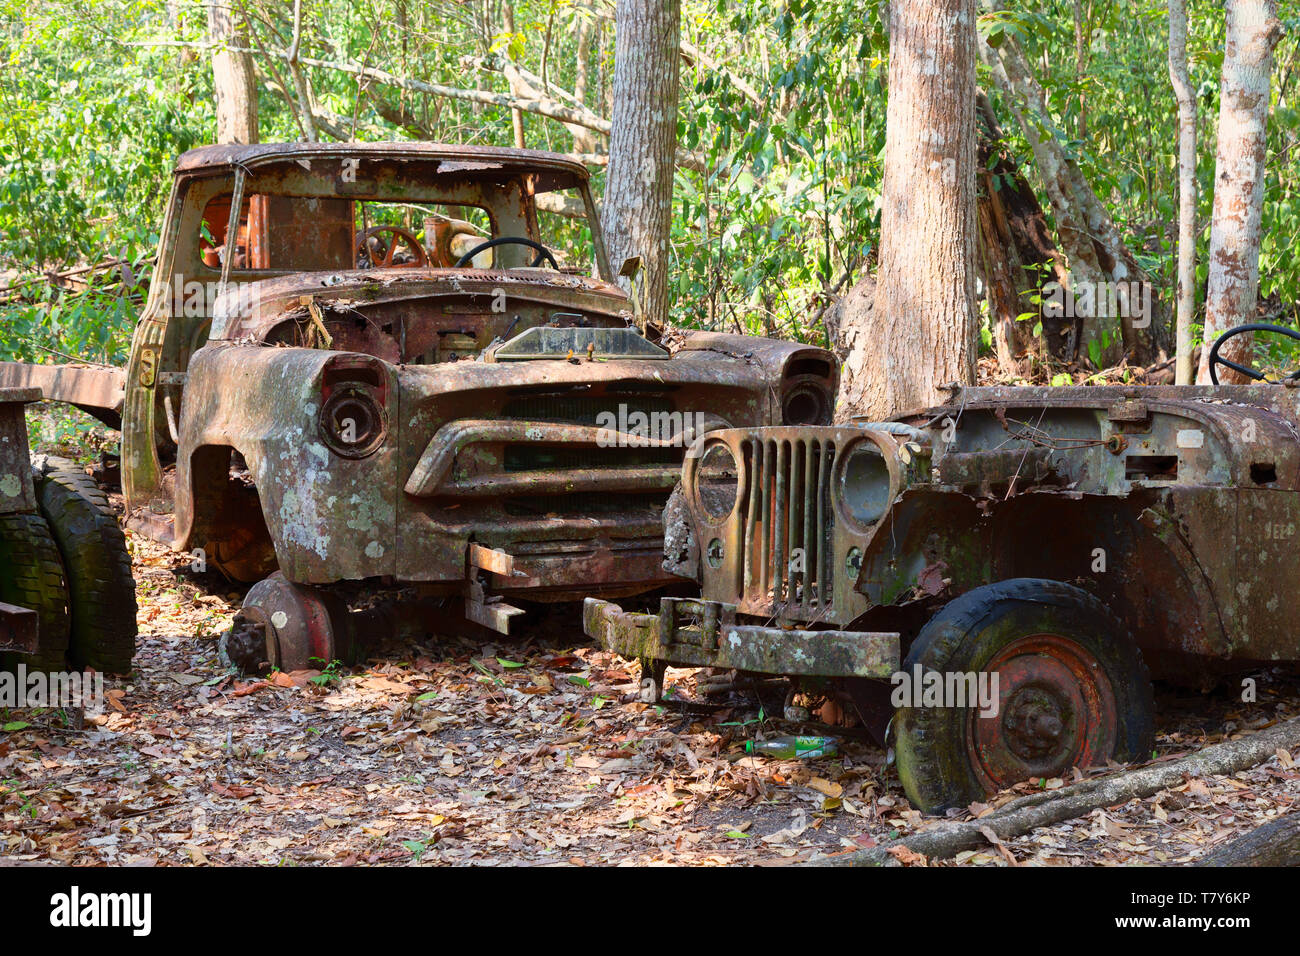 Old cars rusting and dumped in the forest, Guatemala Central America. Concept - Broken down, Pollution, Stock Photo